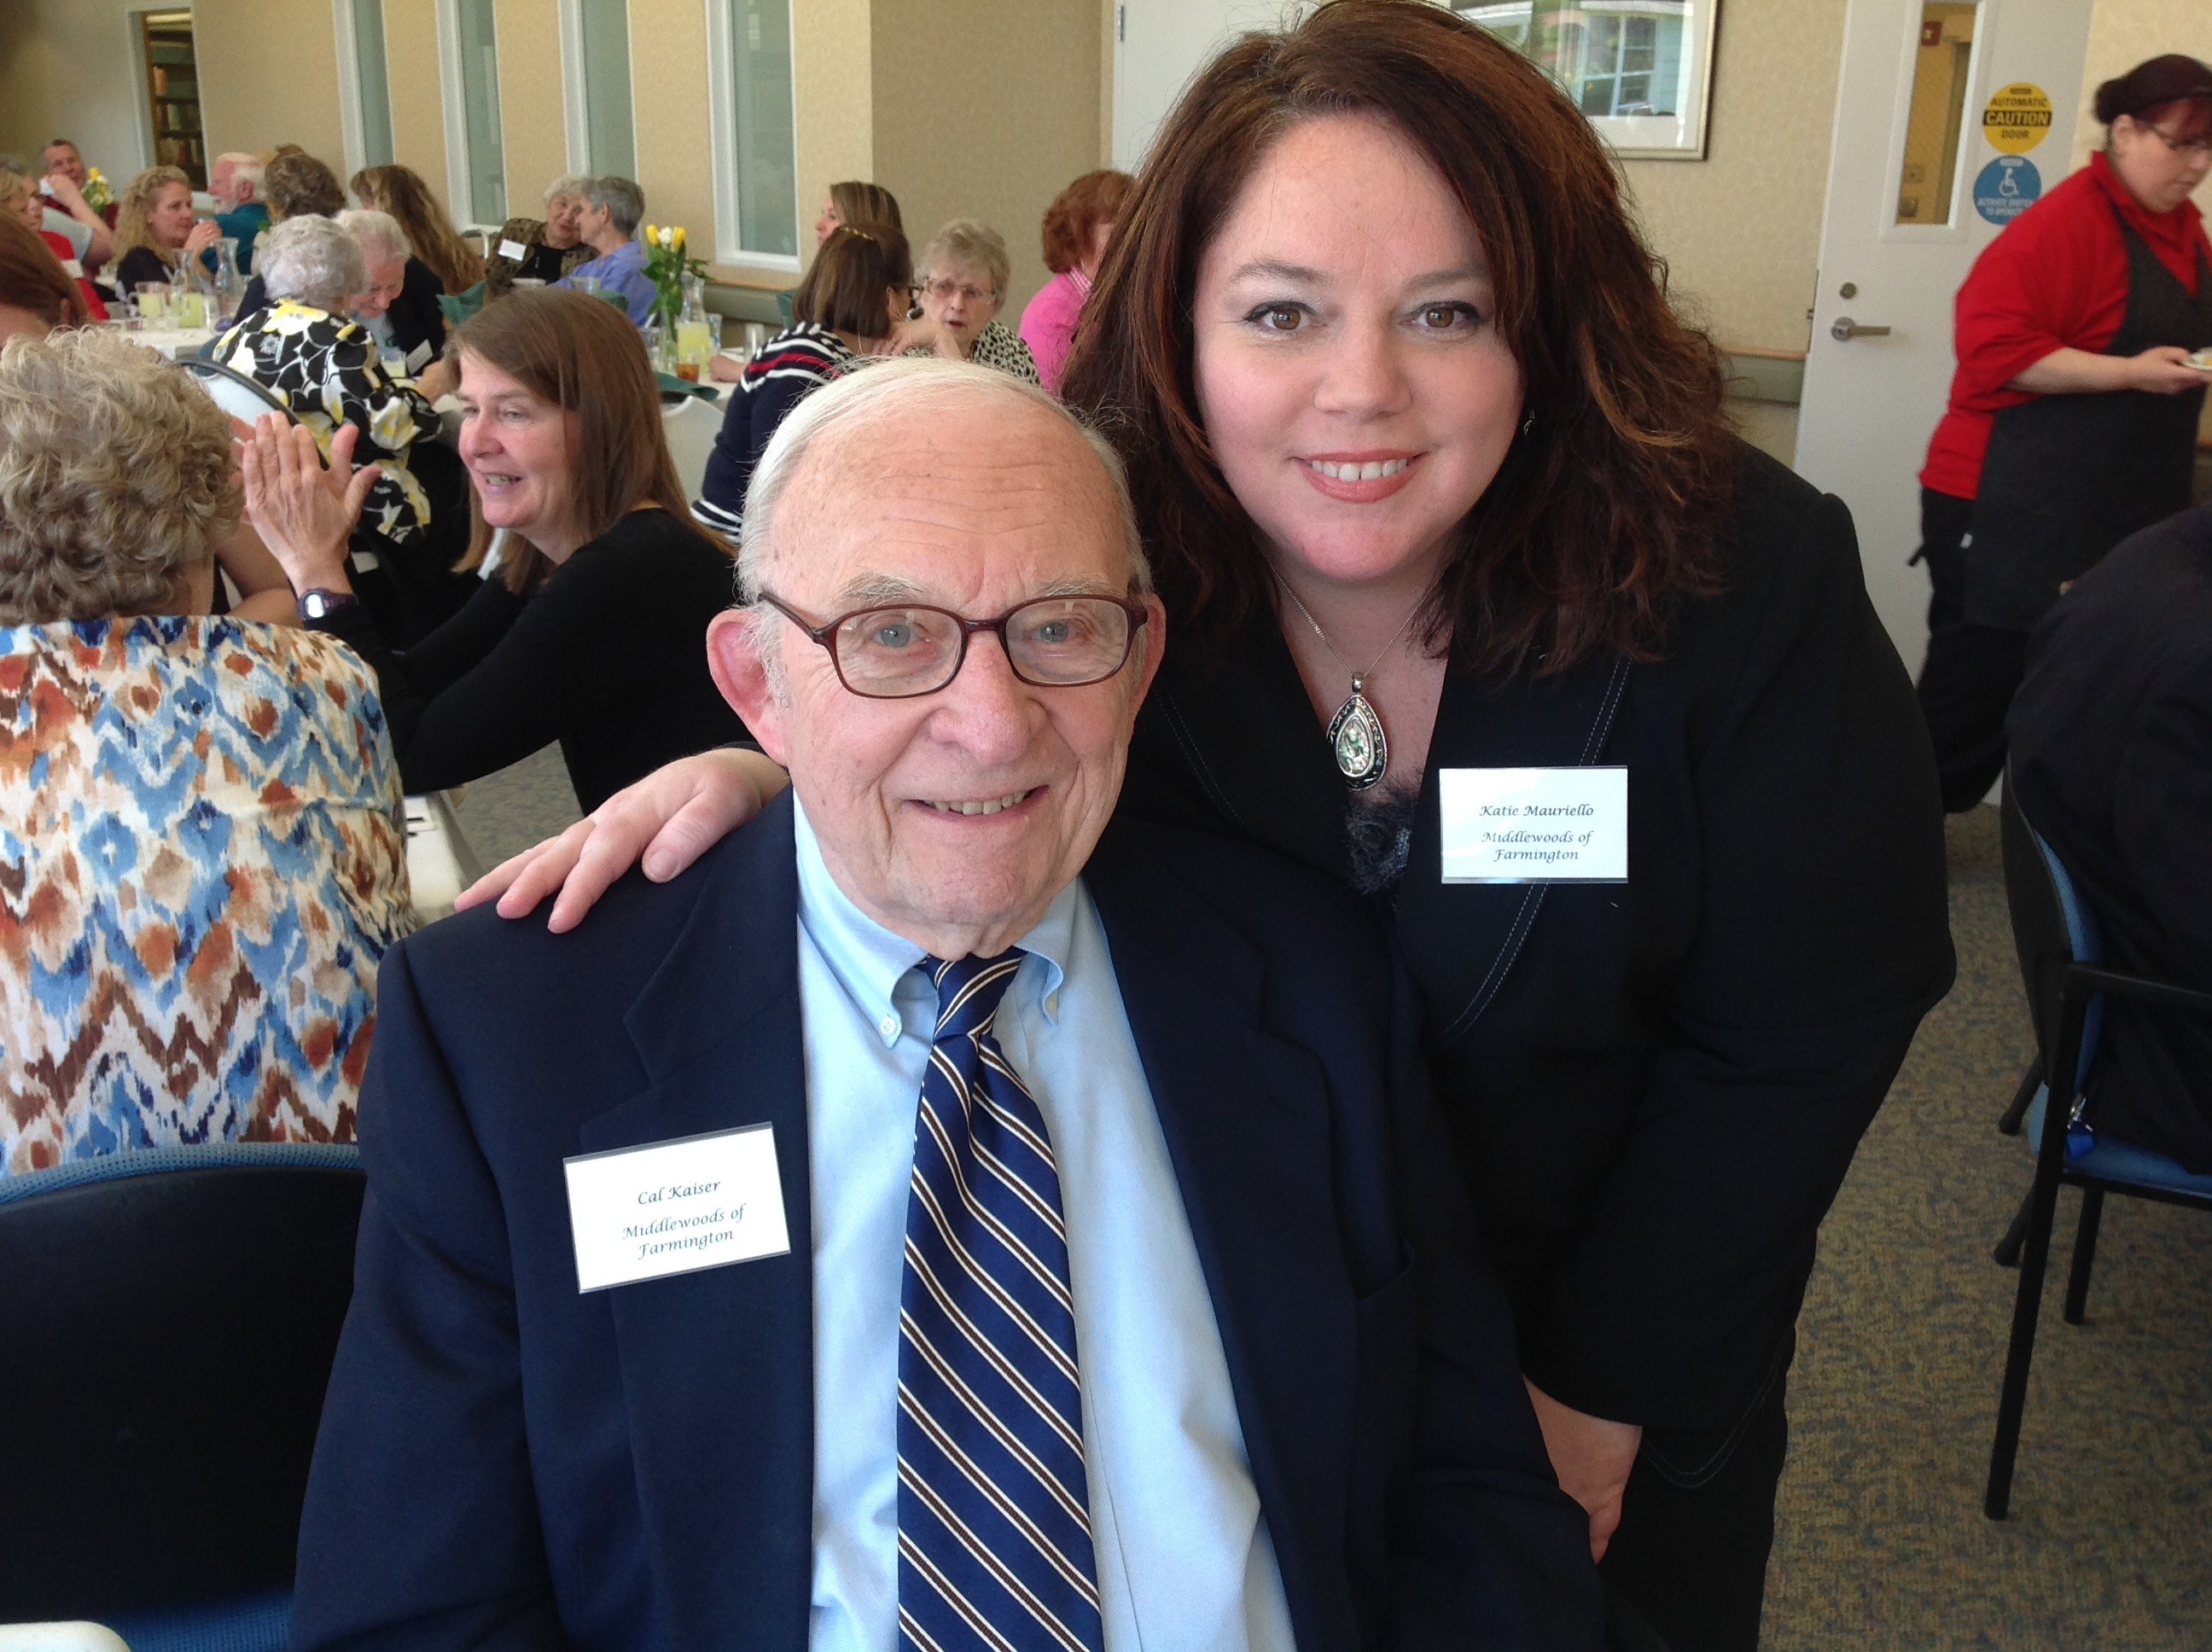 Middlewoods of Farmington Resident Recognized by CALA